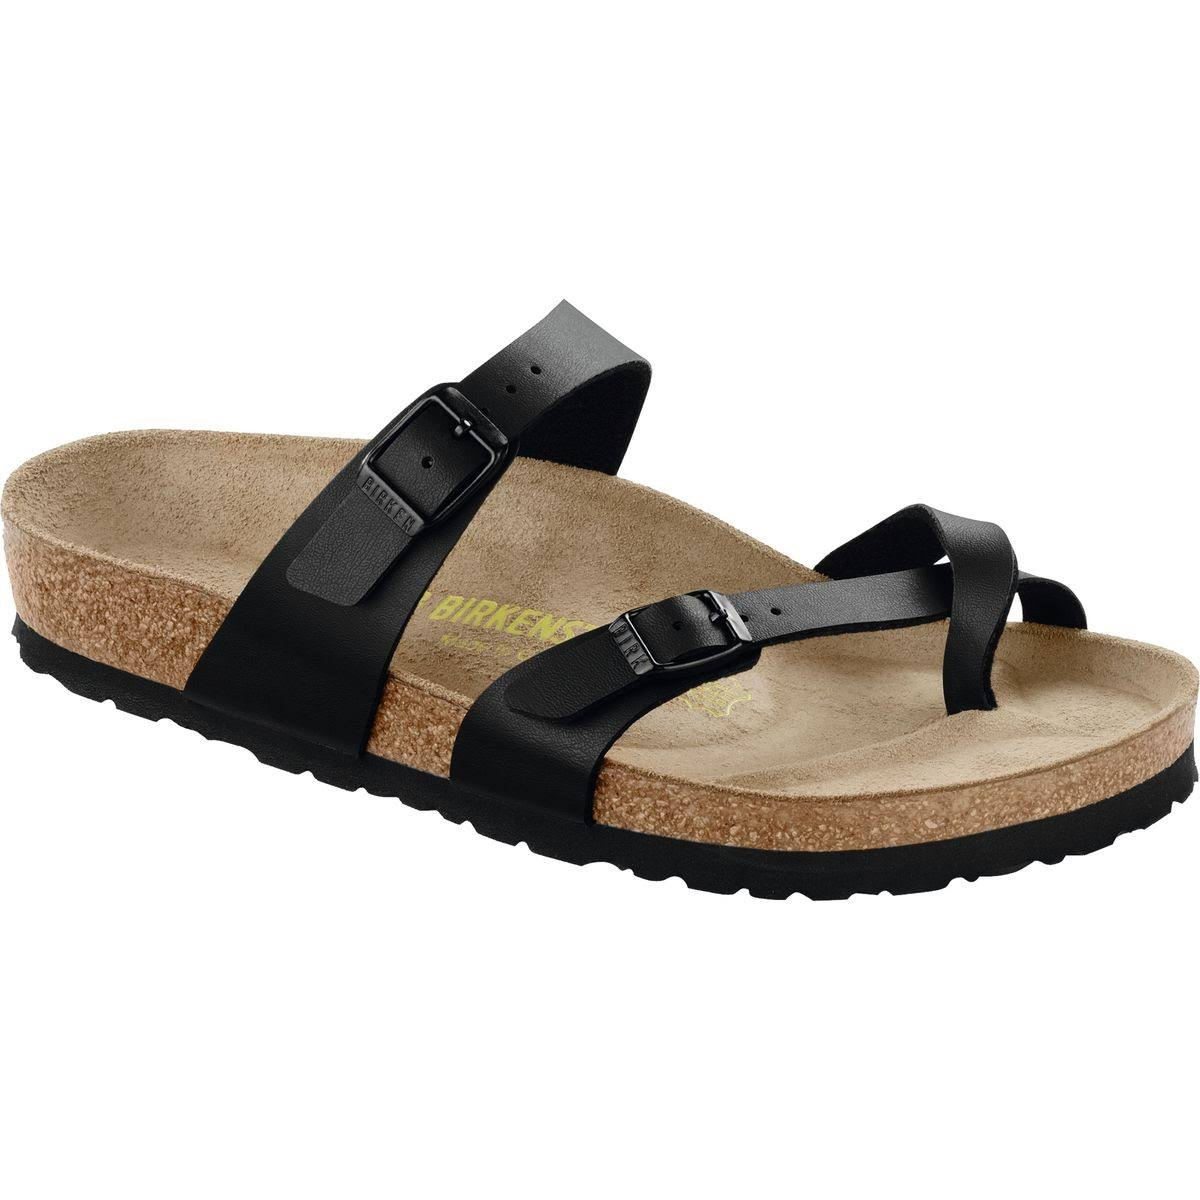 Birkenstock Women's Mayari Leather Comfort Thong Sandals - Black